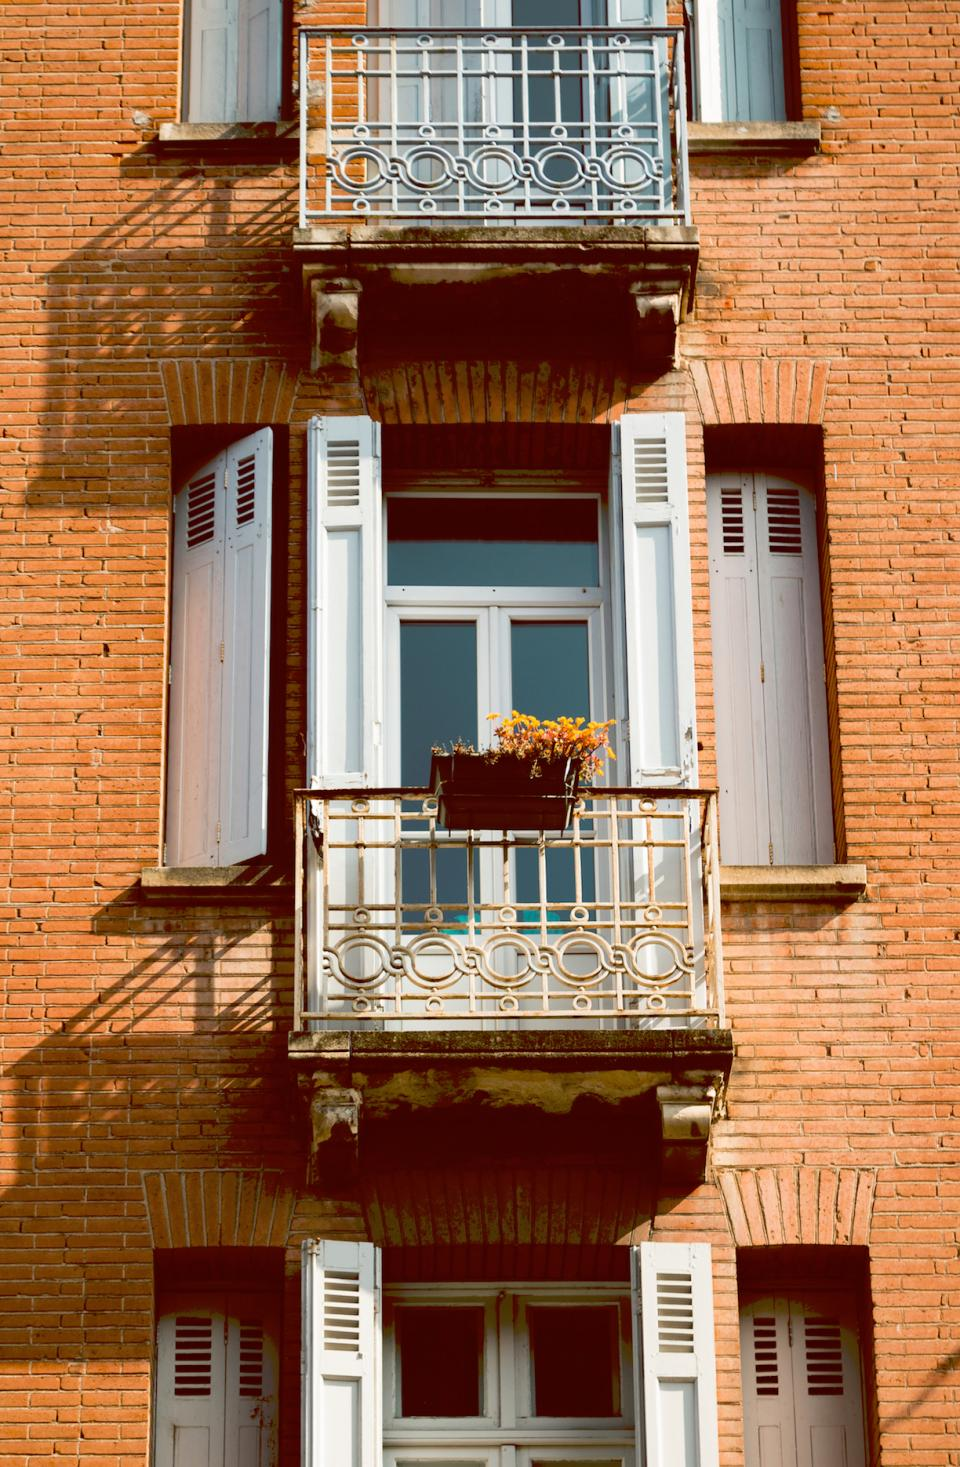 buildings structure apartment house bricks windows grills balcony